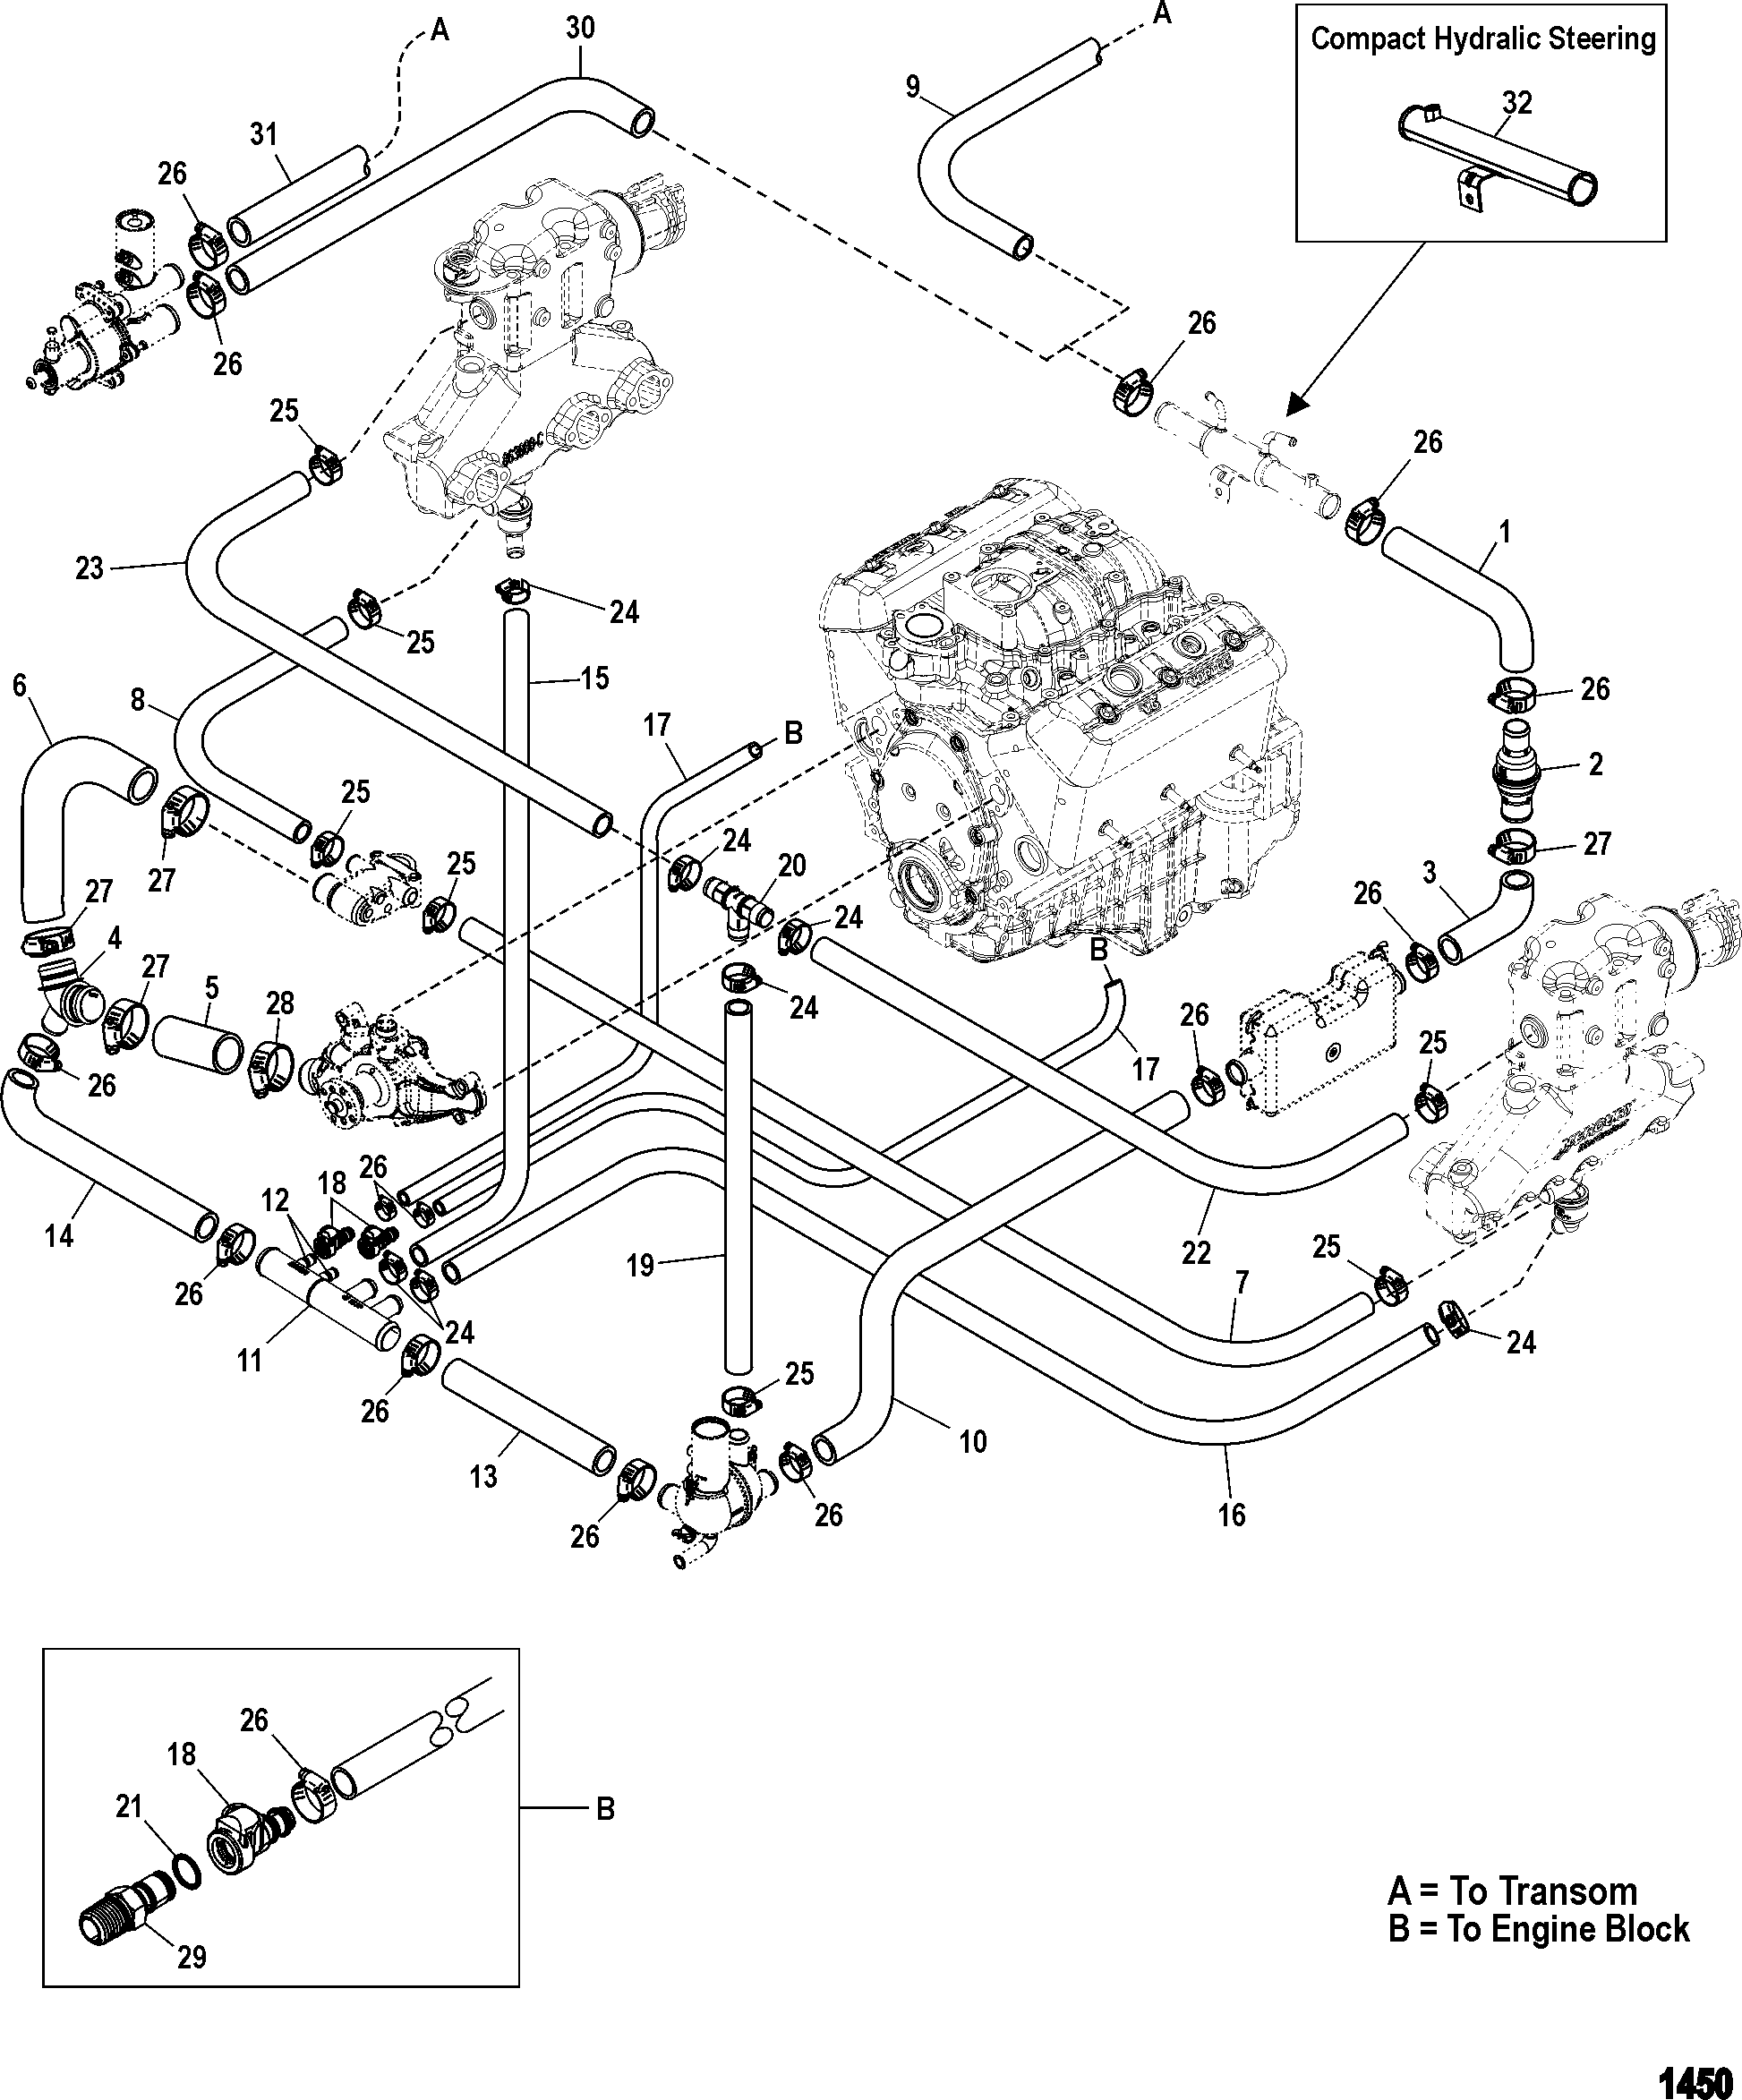 8 1 Chevy Vortec Engine Diagram